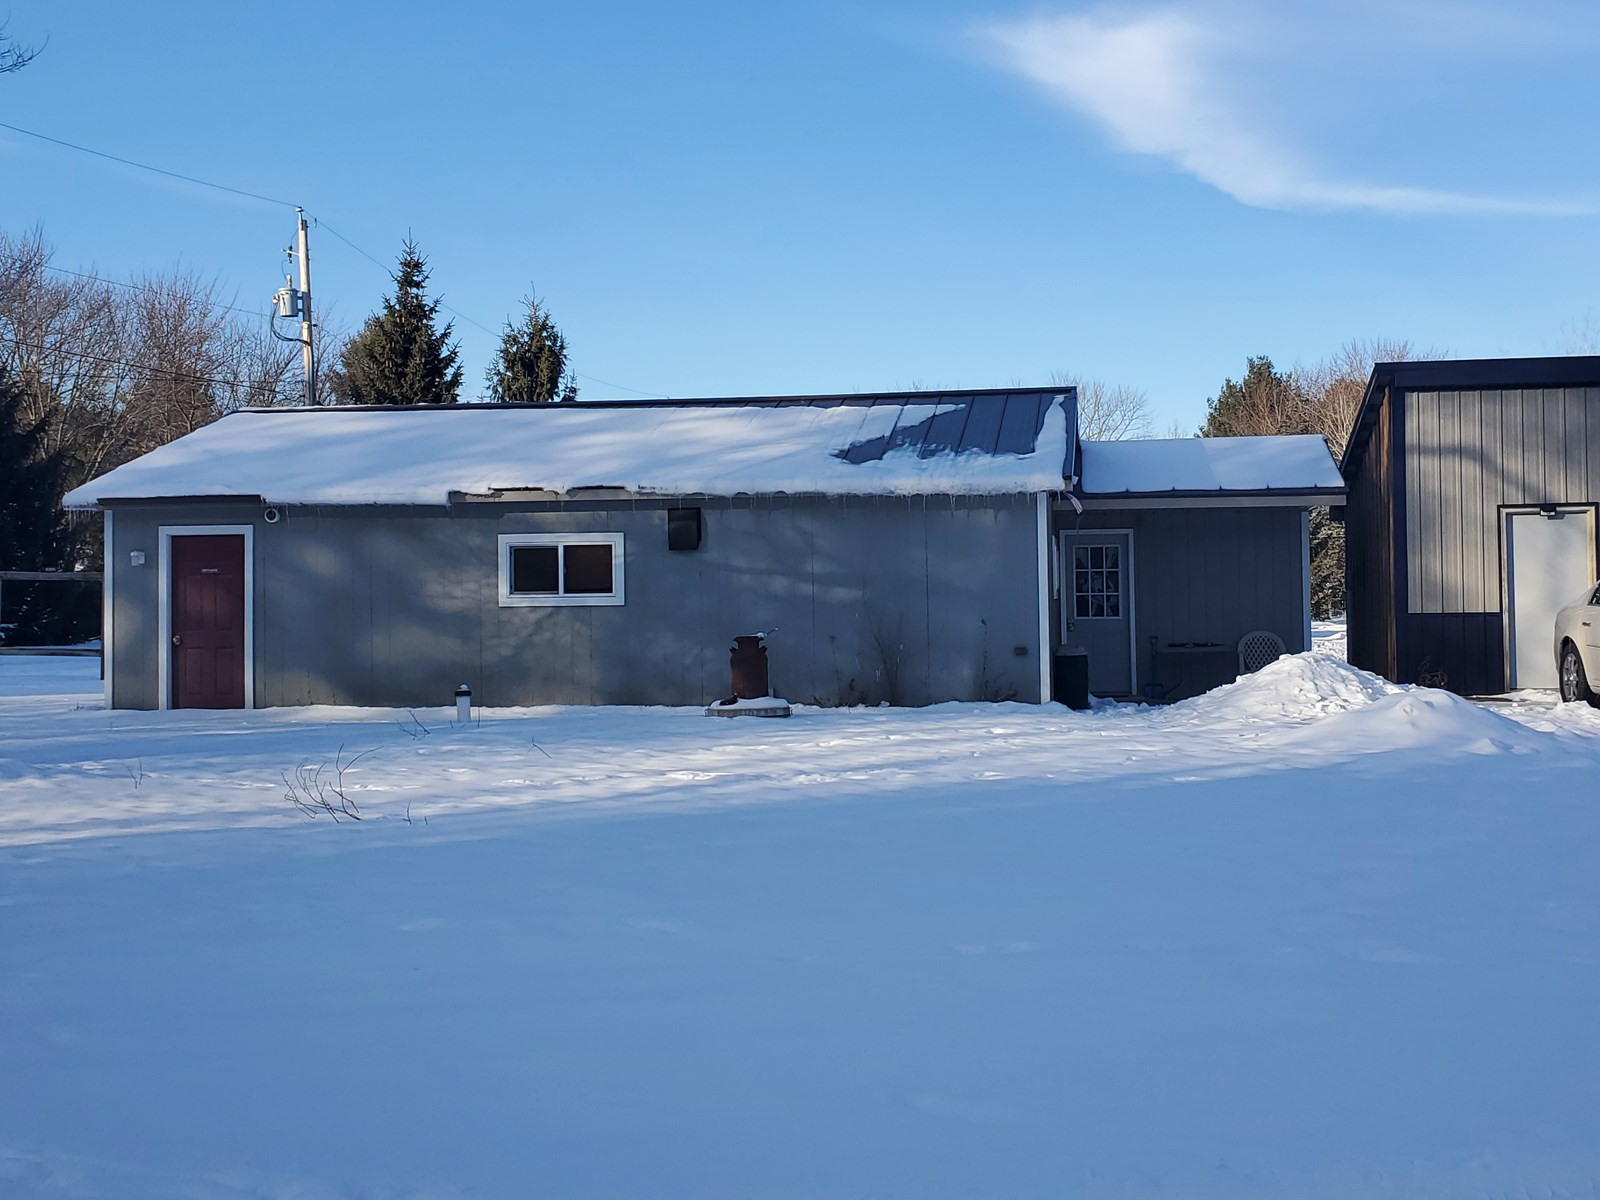 Storage Unit For Sale In Waupaca, Co